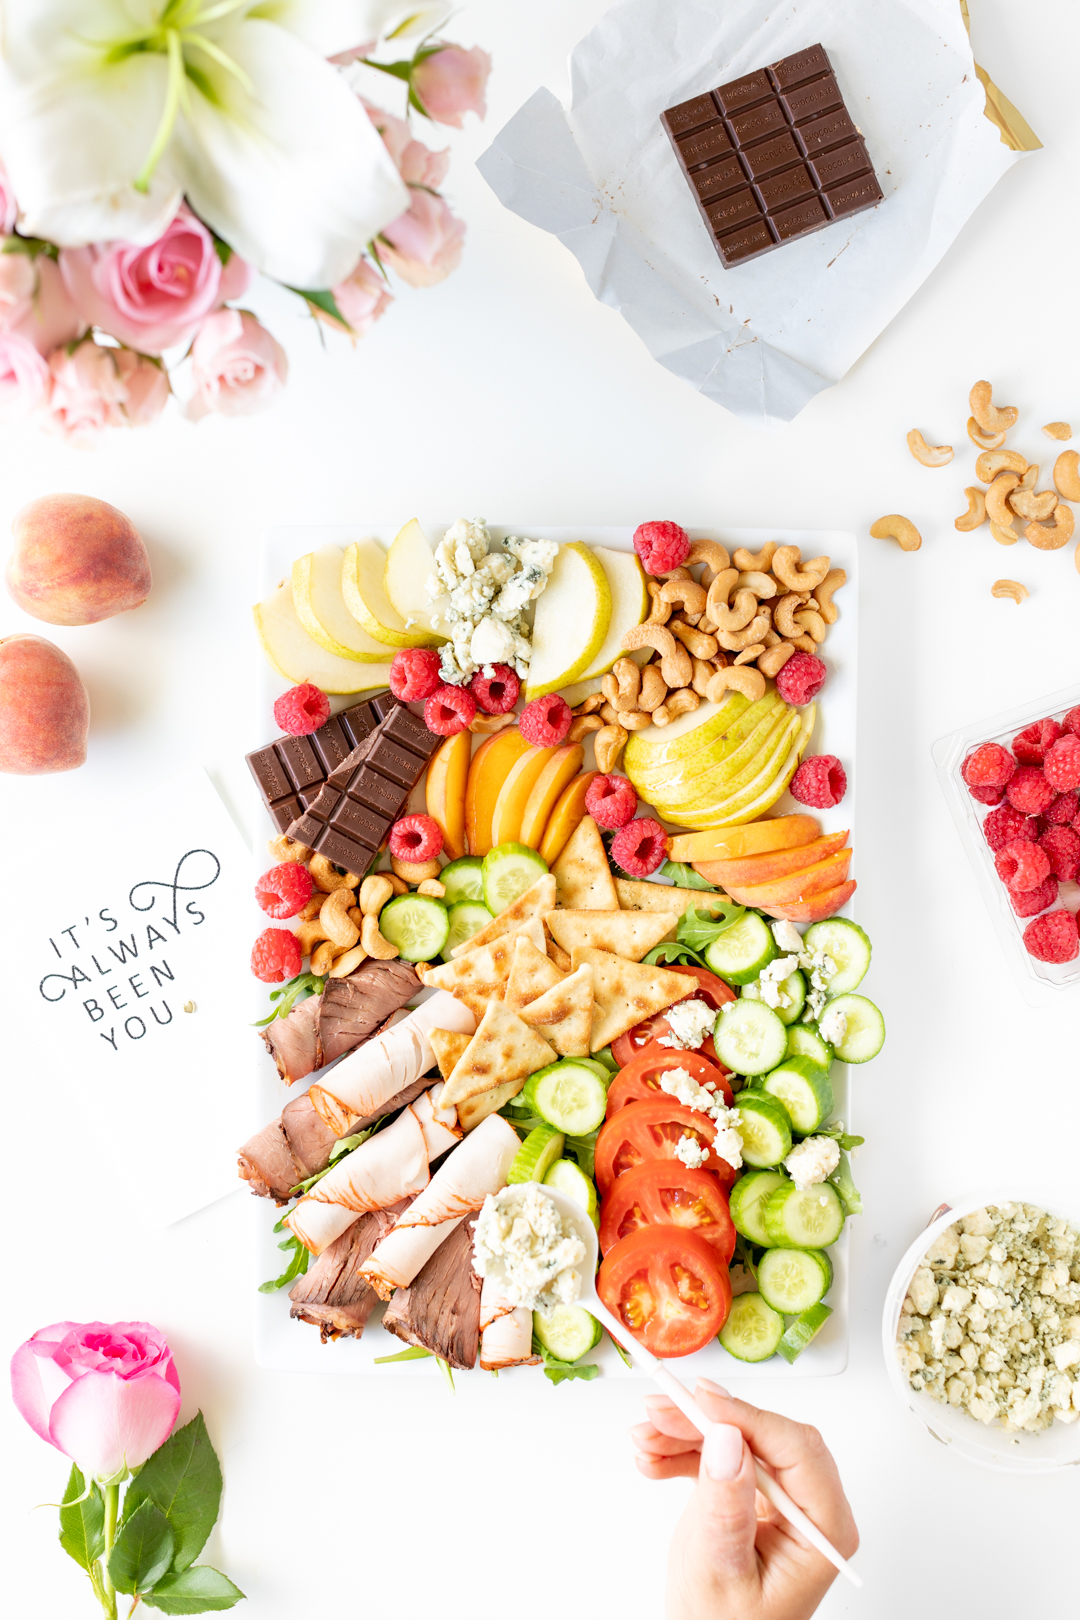 date night snack board with a variety of foods from pears, chocolate and raspberries.